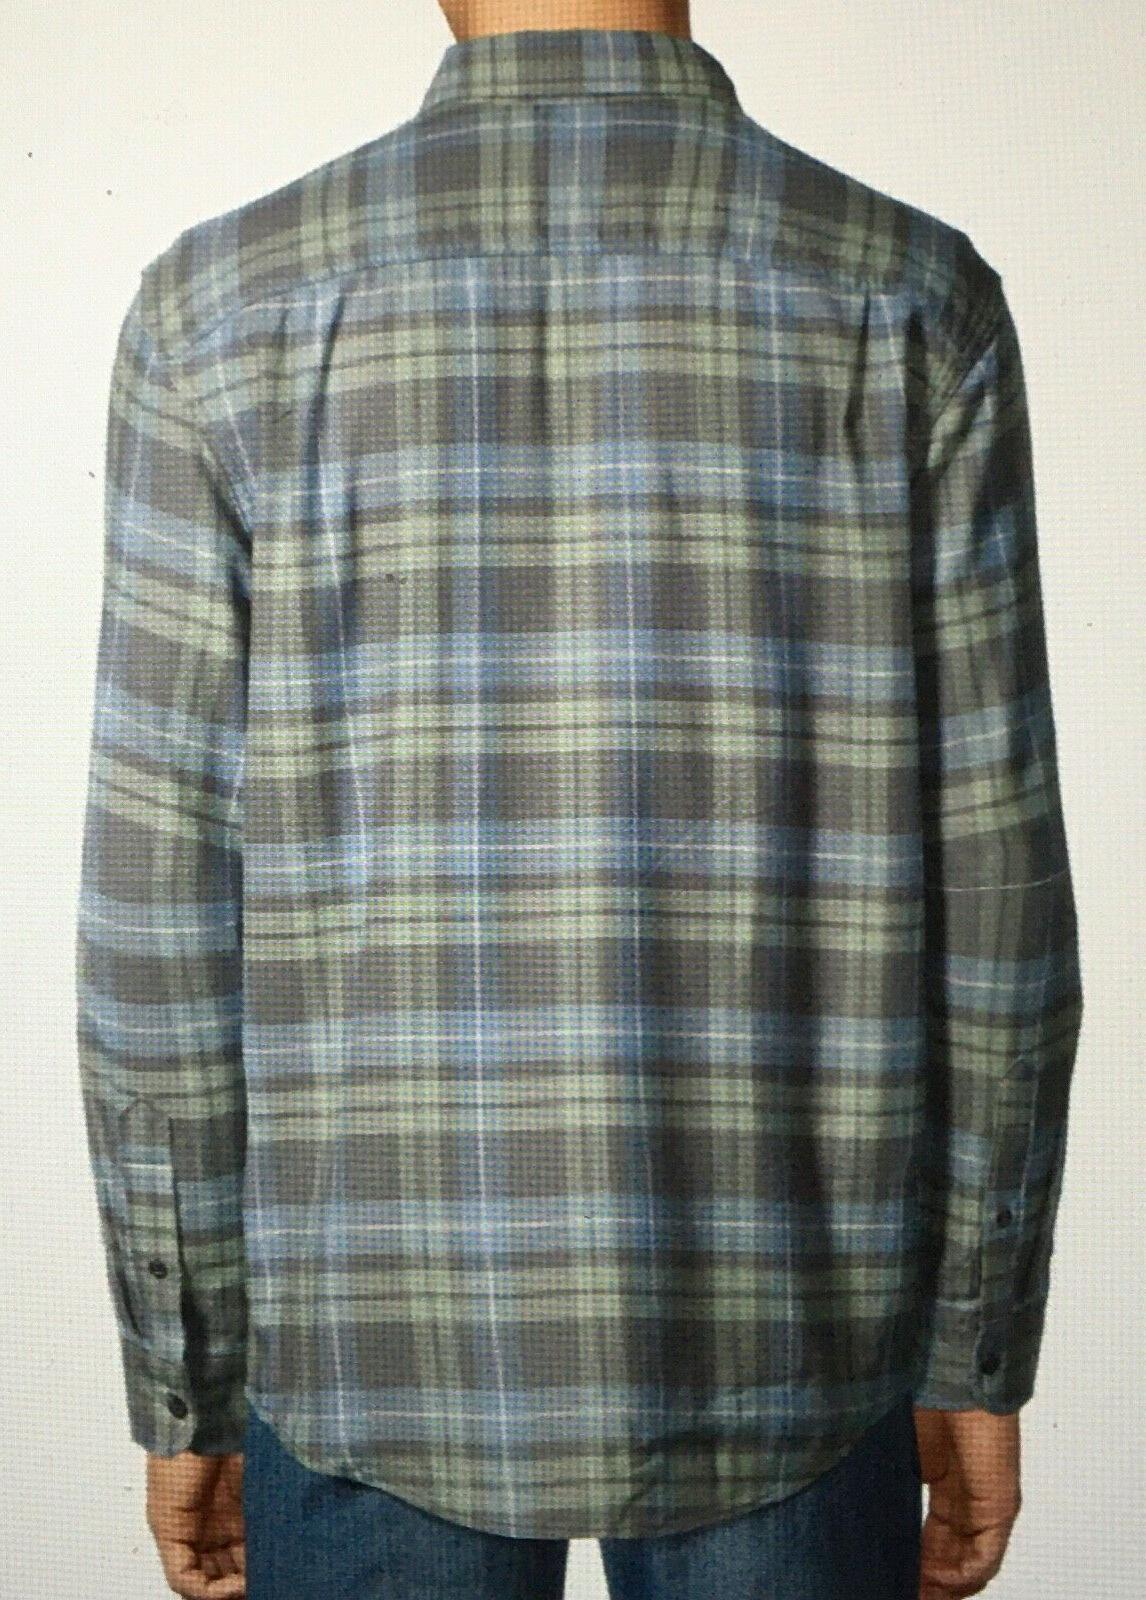 NEW Grey Blue Plaid Shirt Long Sleeve Down 3XL